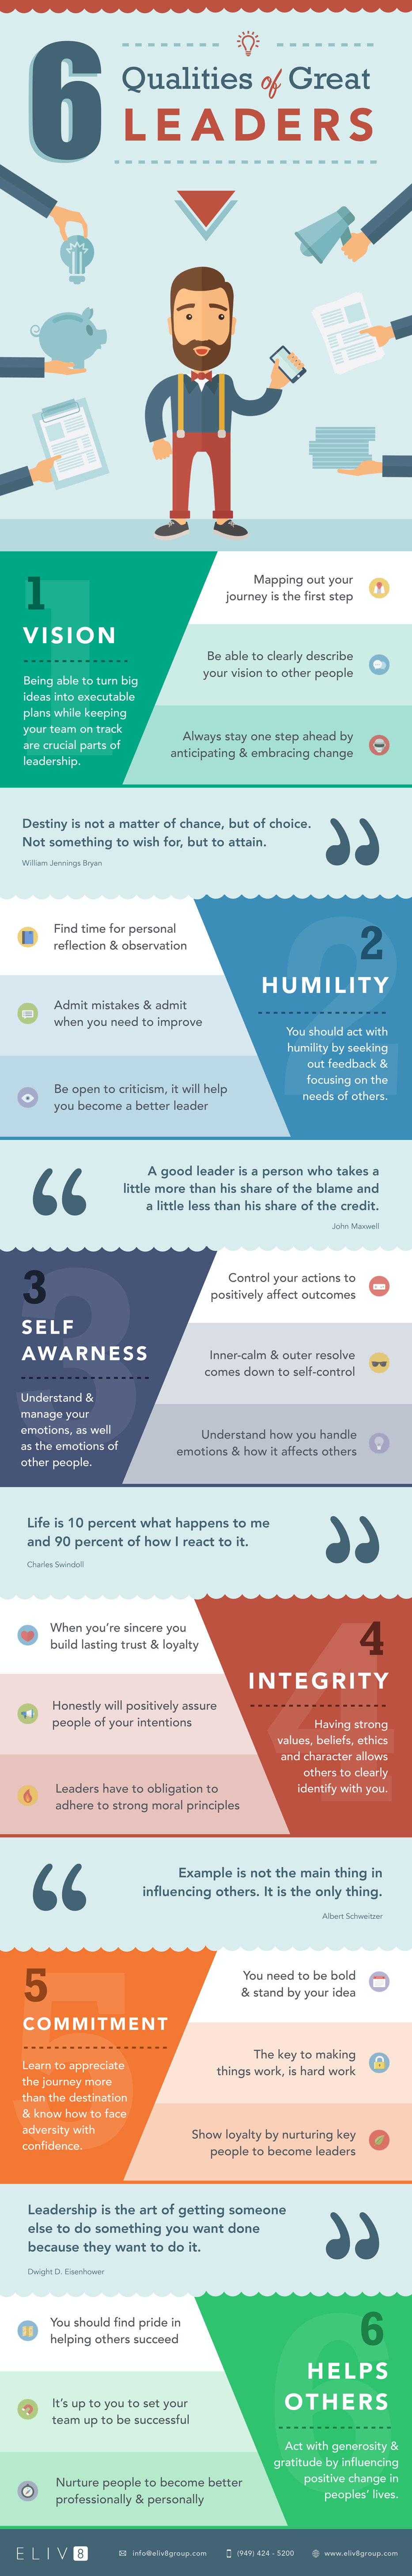 common characteristics of powerful leaders in history What most failed leaders have in common lead what most failed leaders have in common people don't fail because of who they are or what they do it's often because of one inaction.